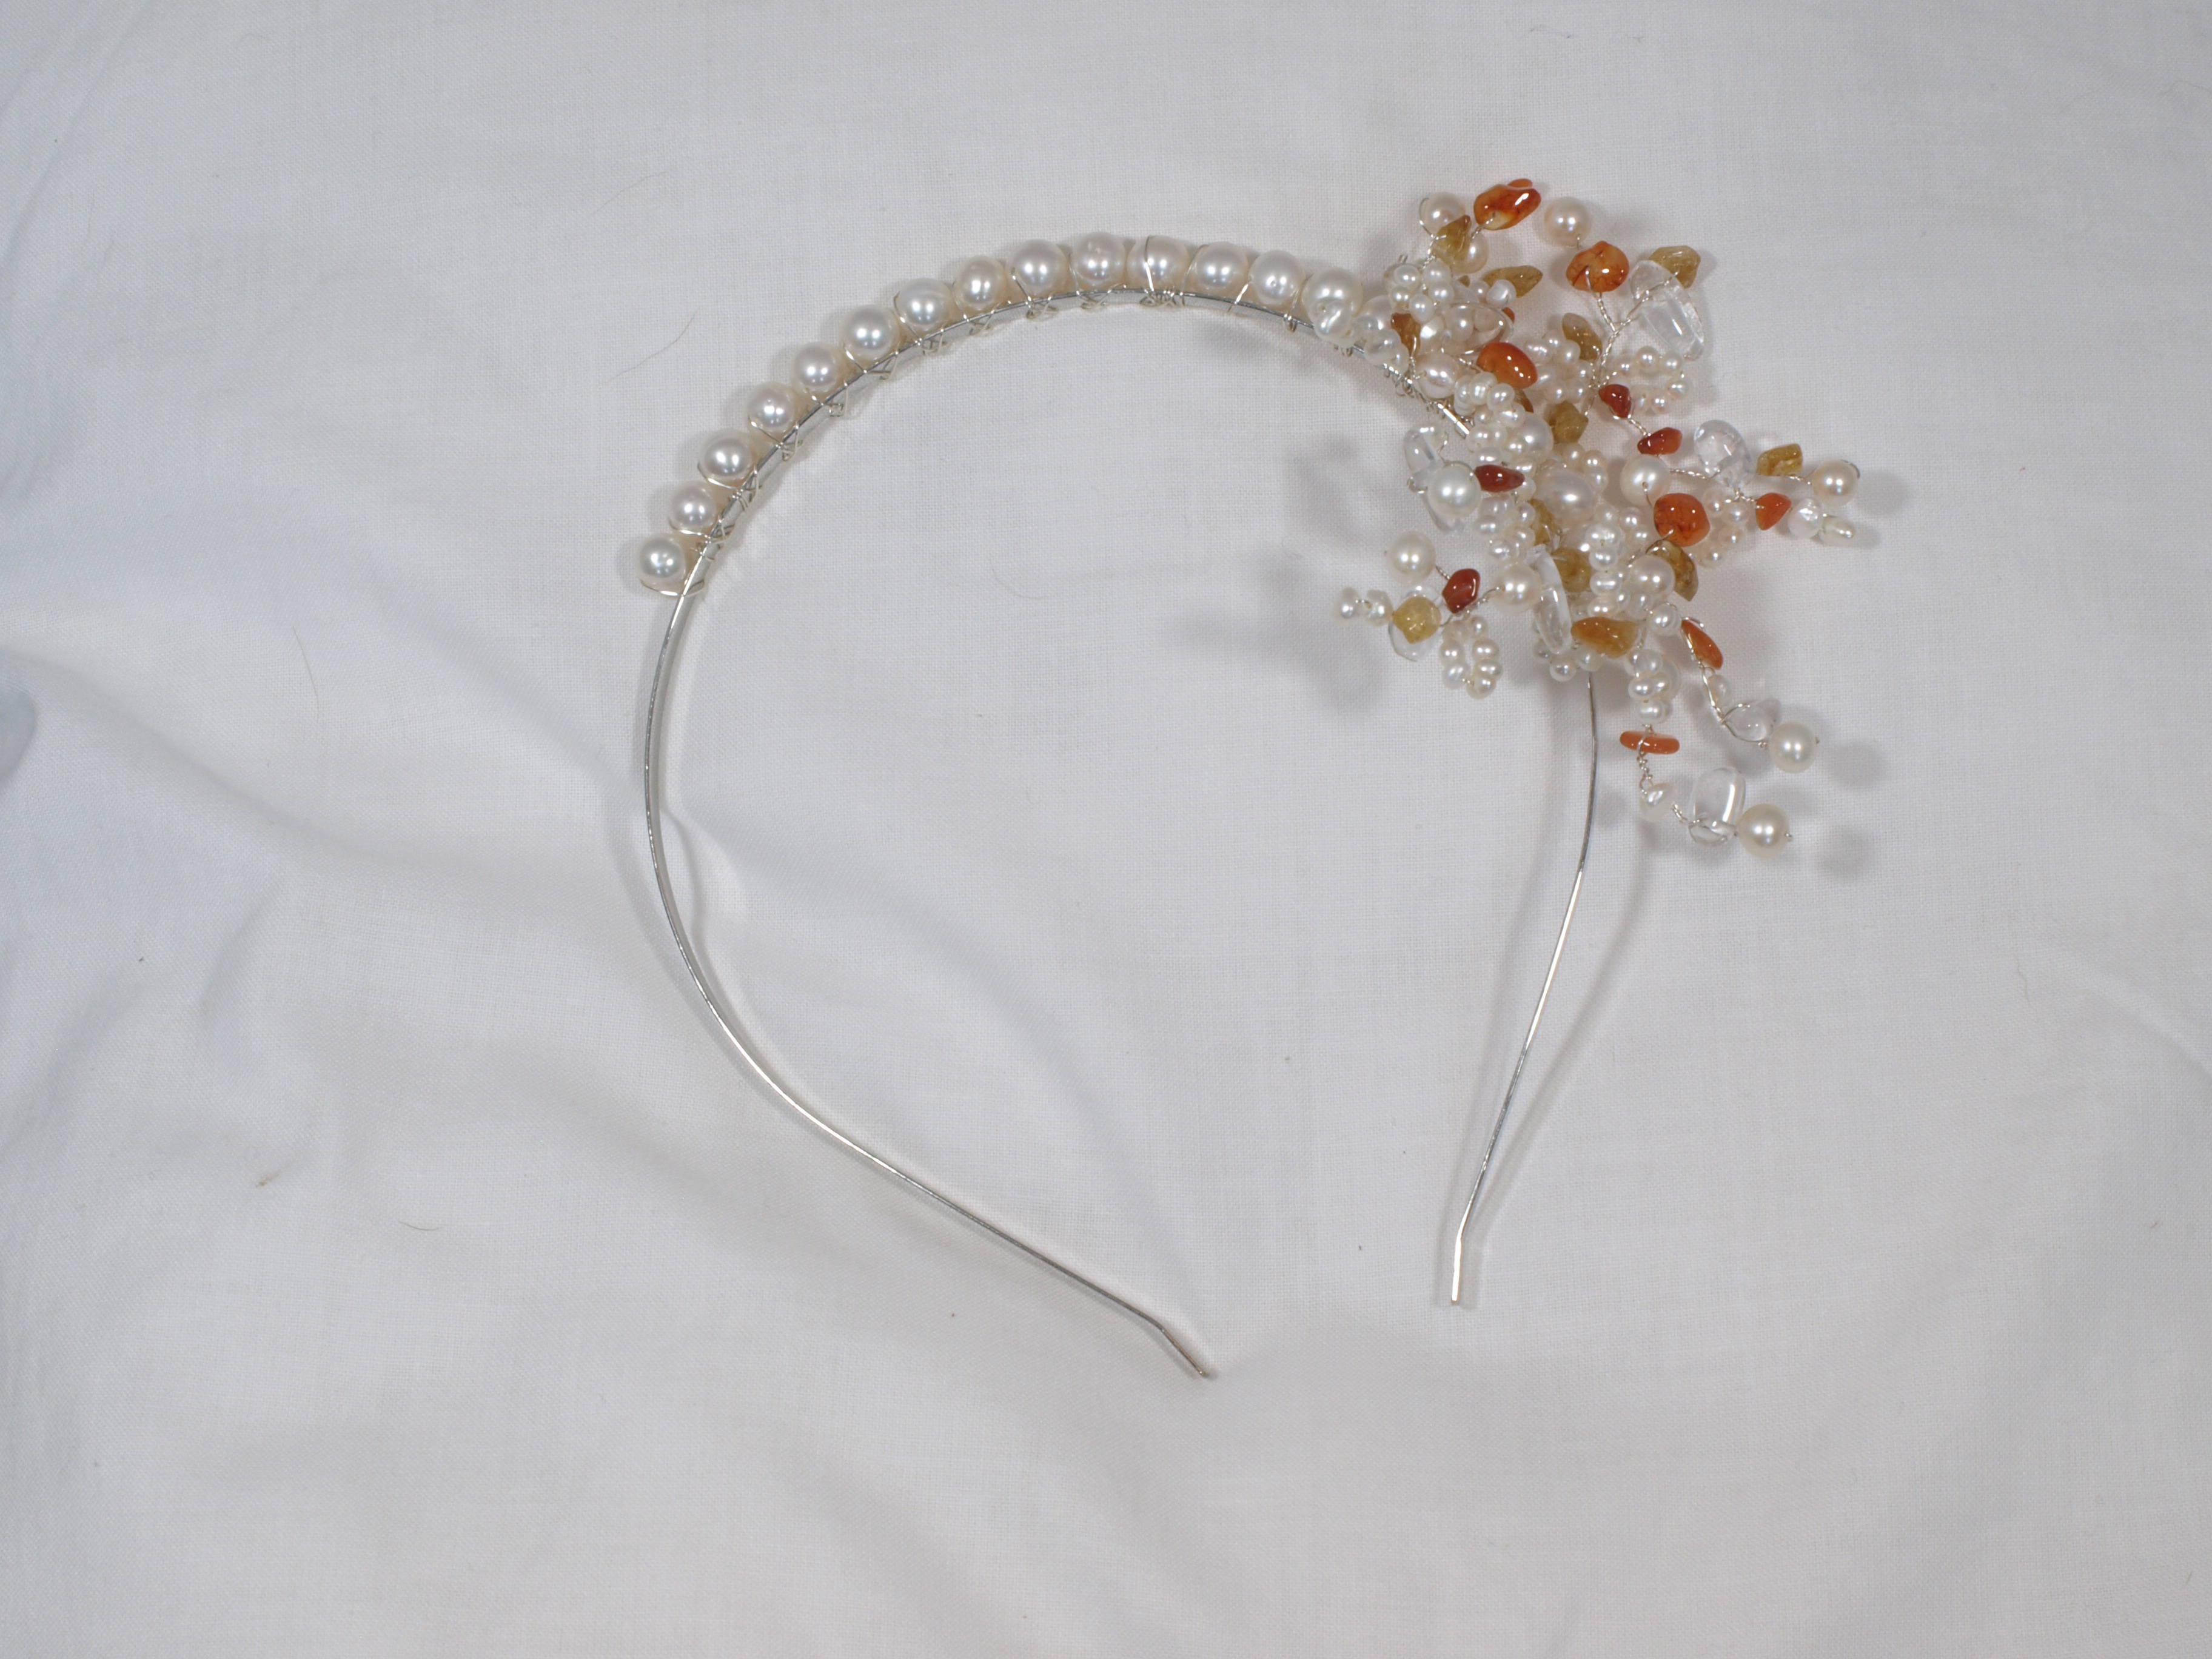 Sunburst side tiara